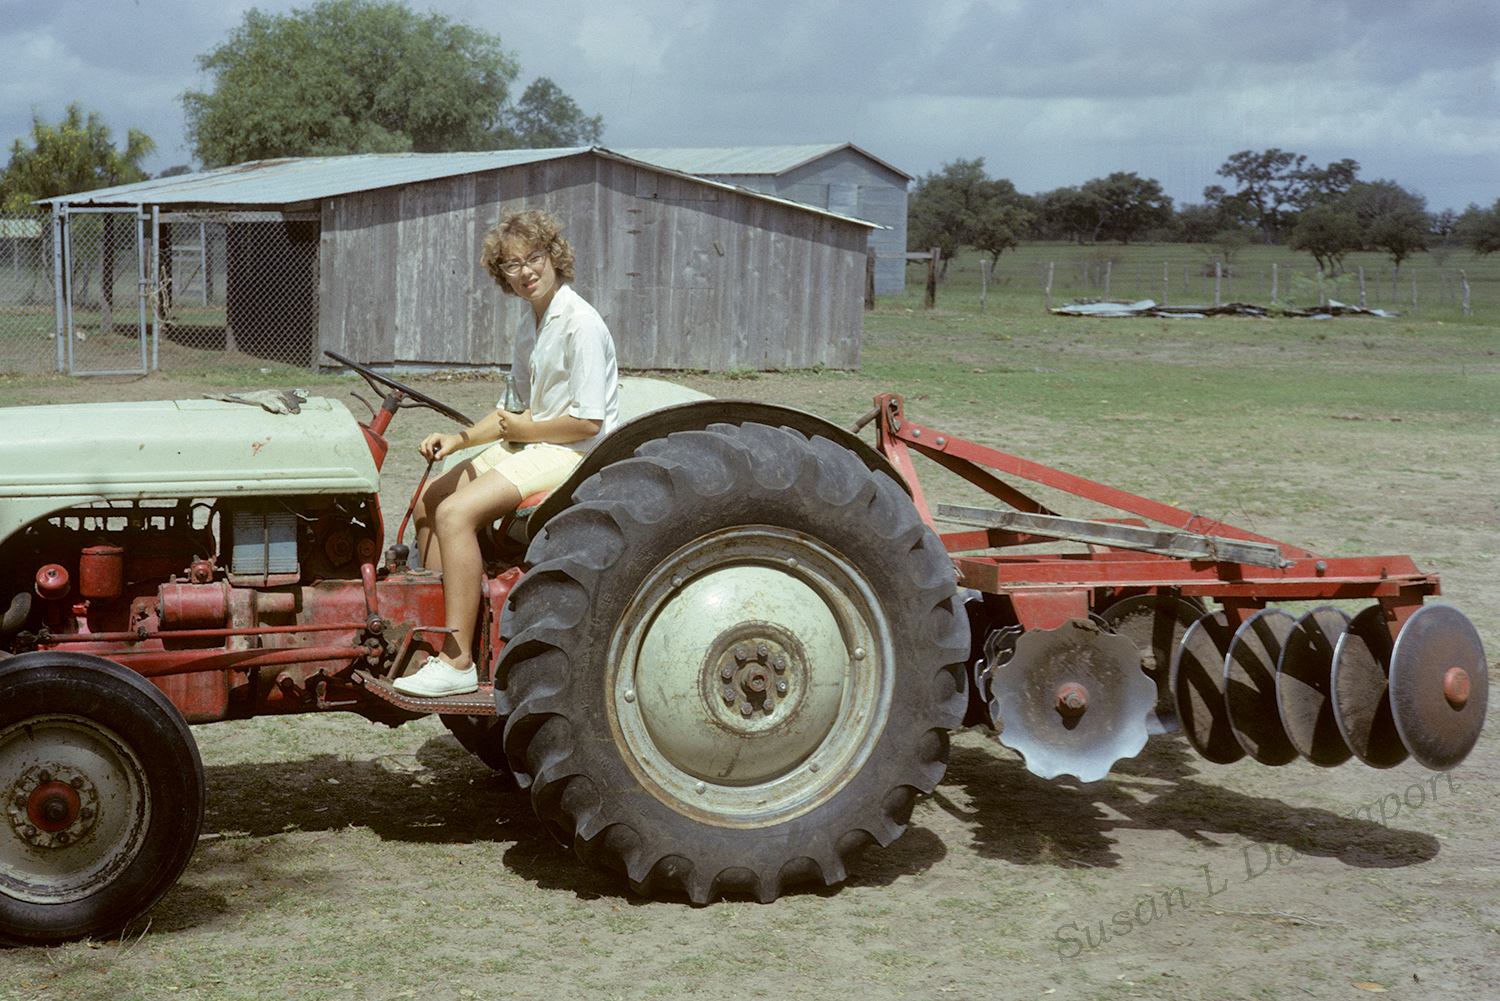 Me on Uncle Byron's Old Tractor - Photo by William C. Jones